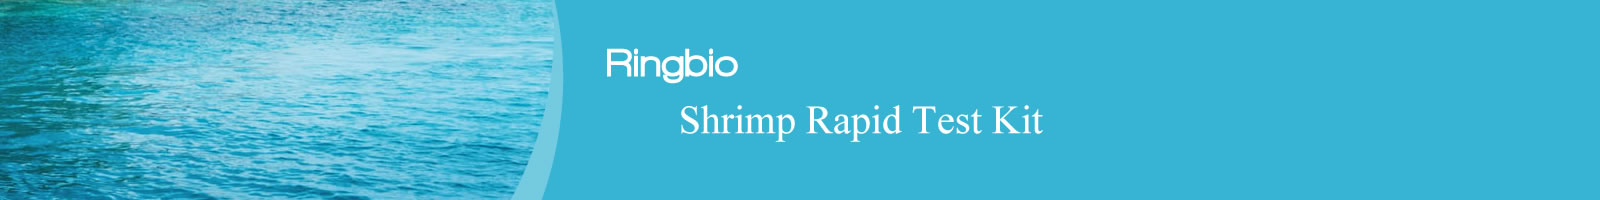 RINGBIO Rapid Test Kit for Shrimp